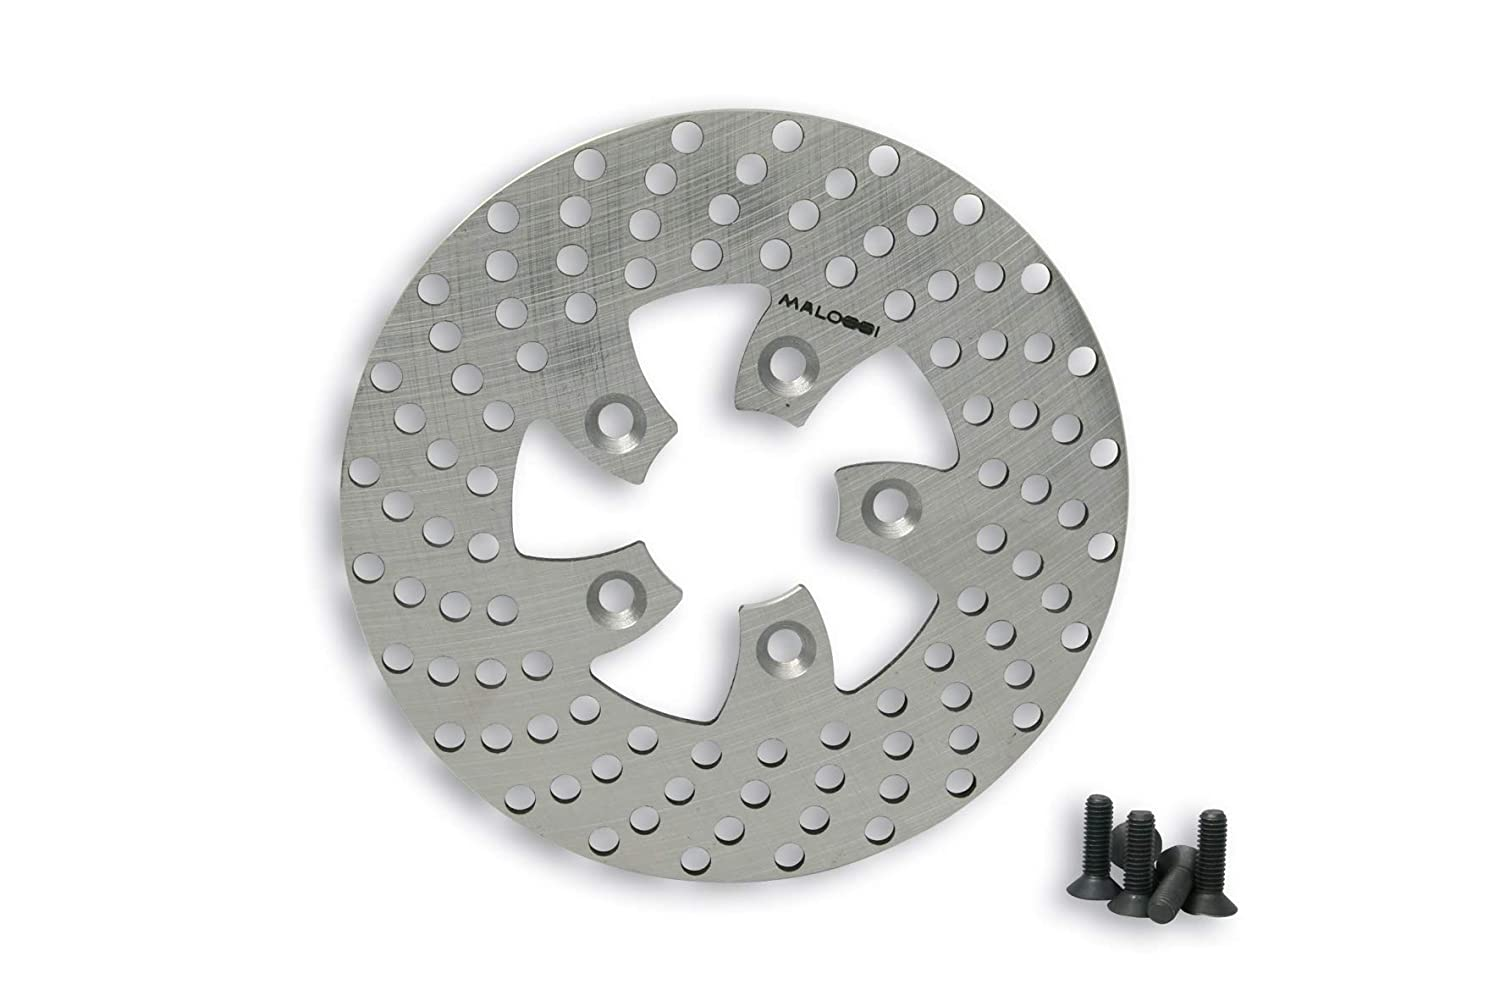 MALOSSI 628958 Disco freno BRAKE POWER DISC /Ø156 MALAGUTI F10 50